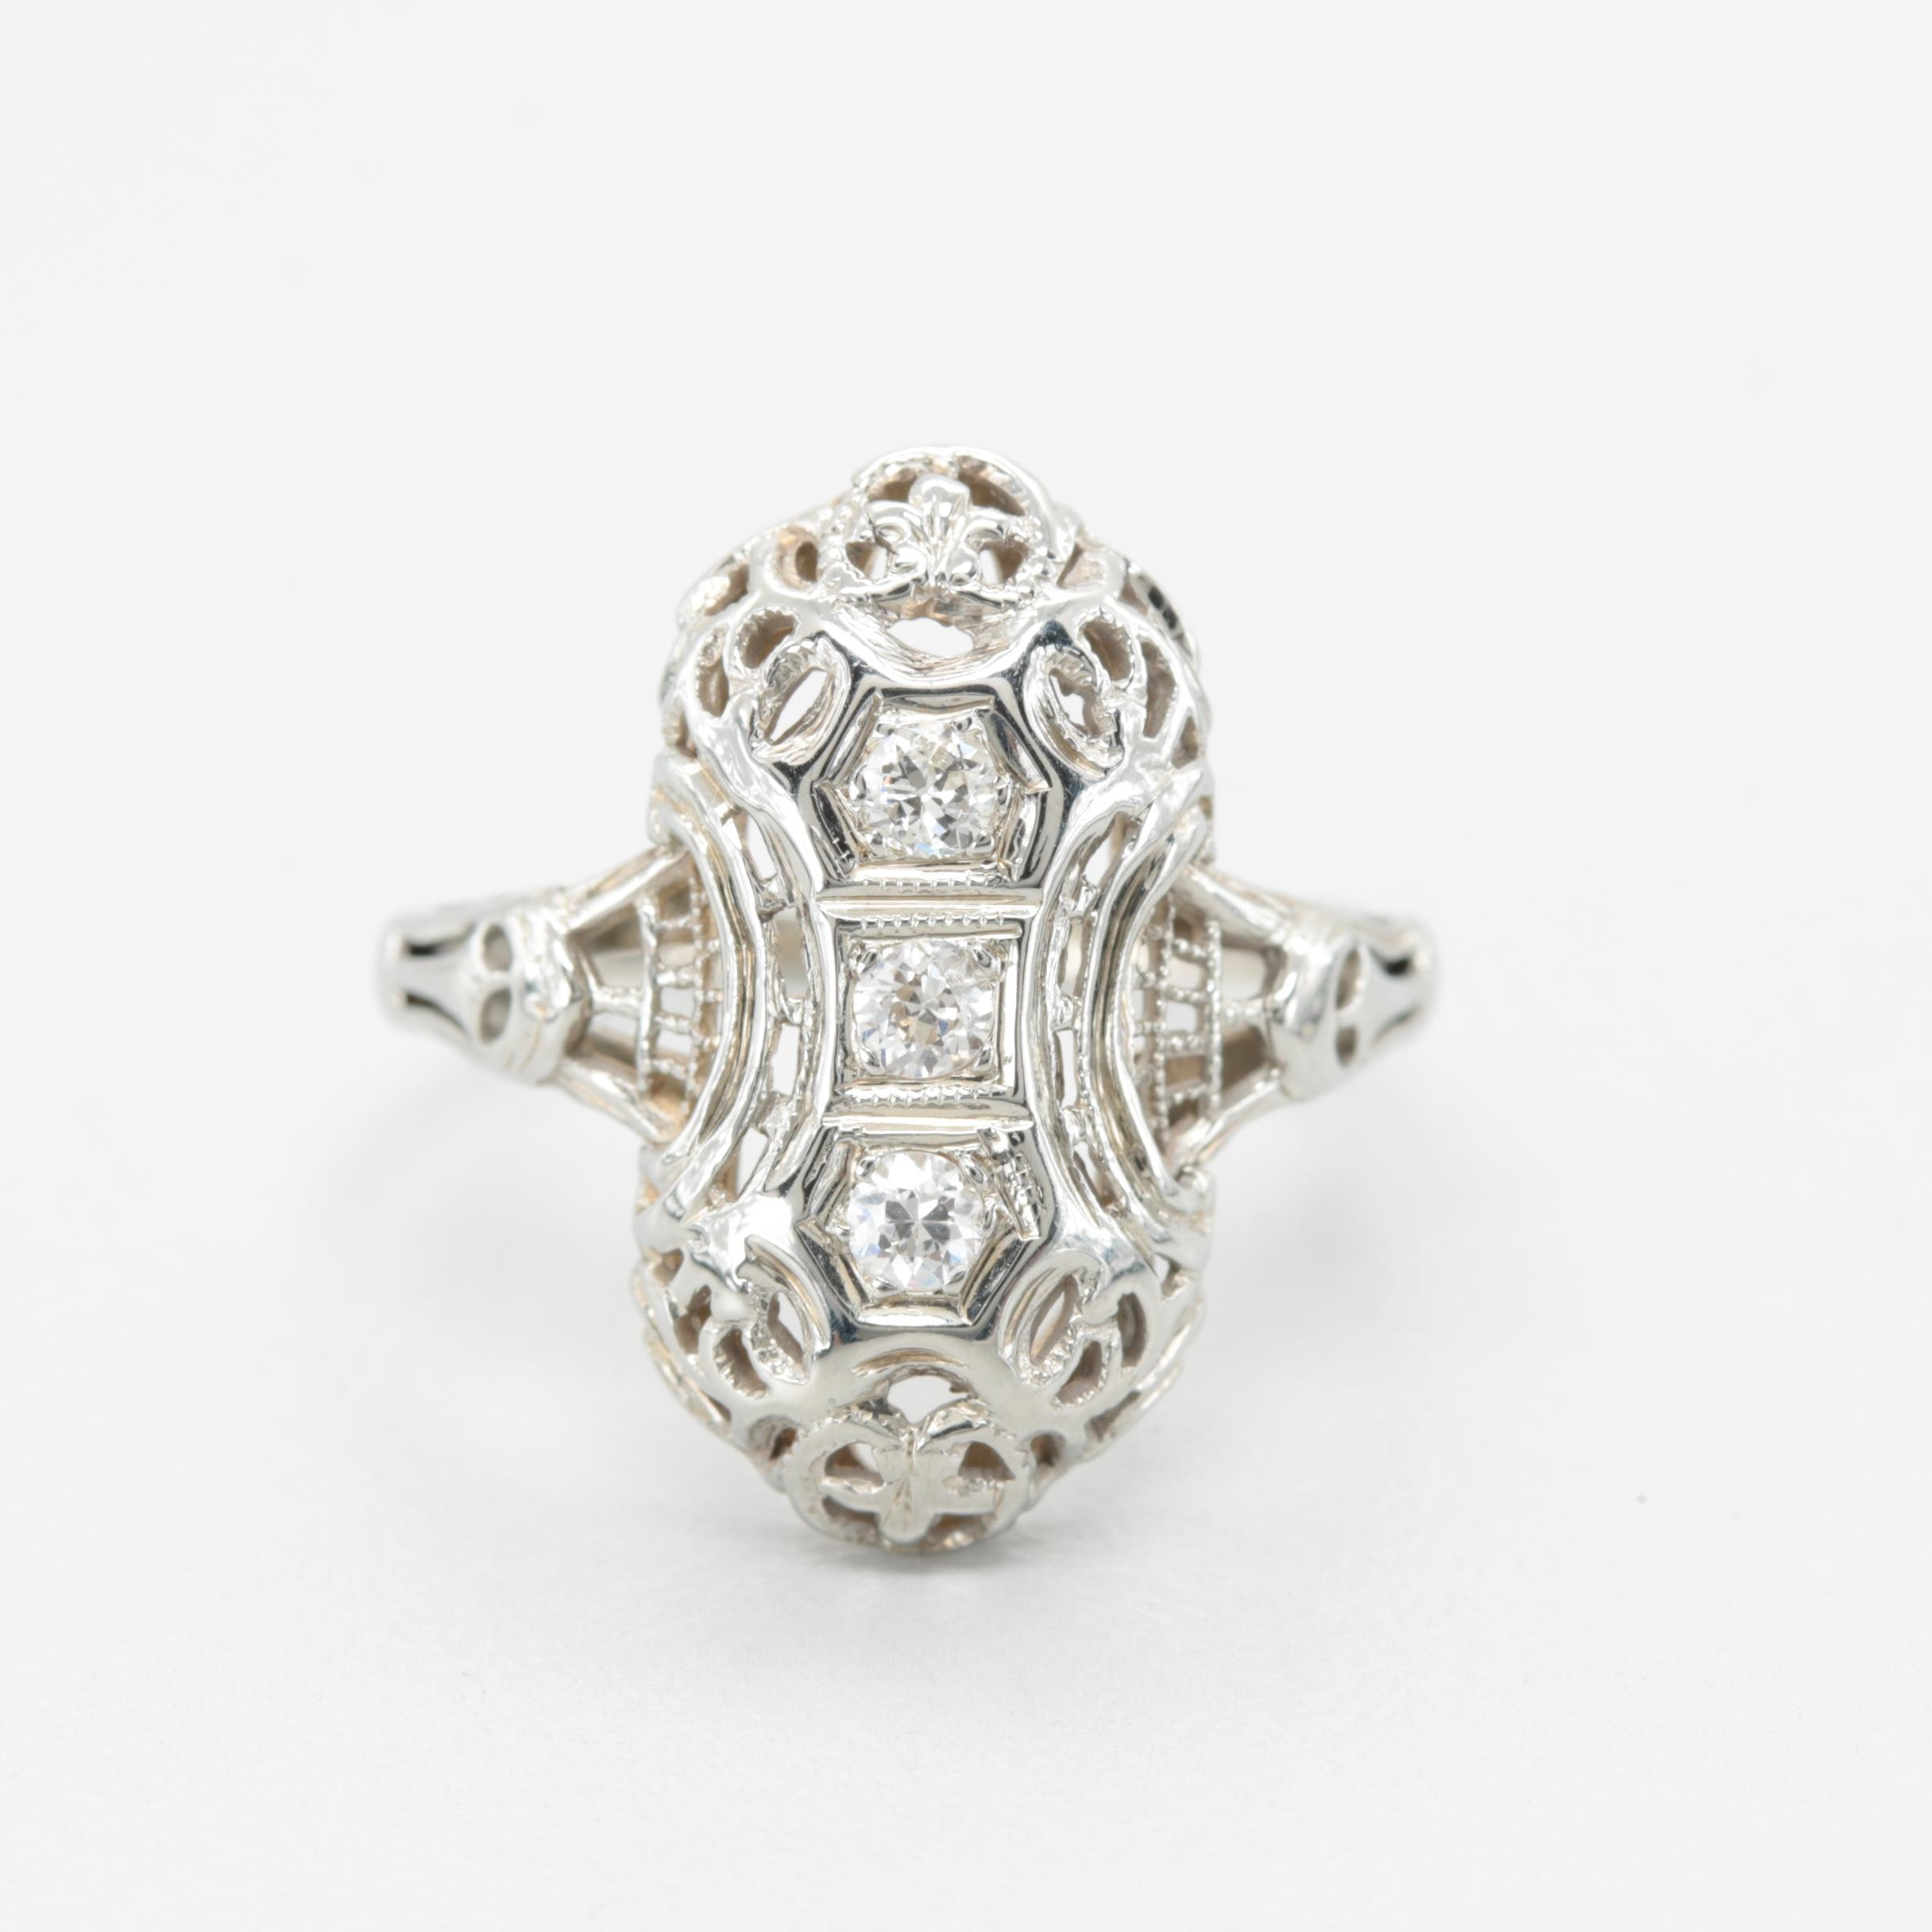 Edwardian 18K White Gold Diamond Dinner Ring